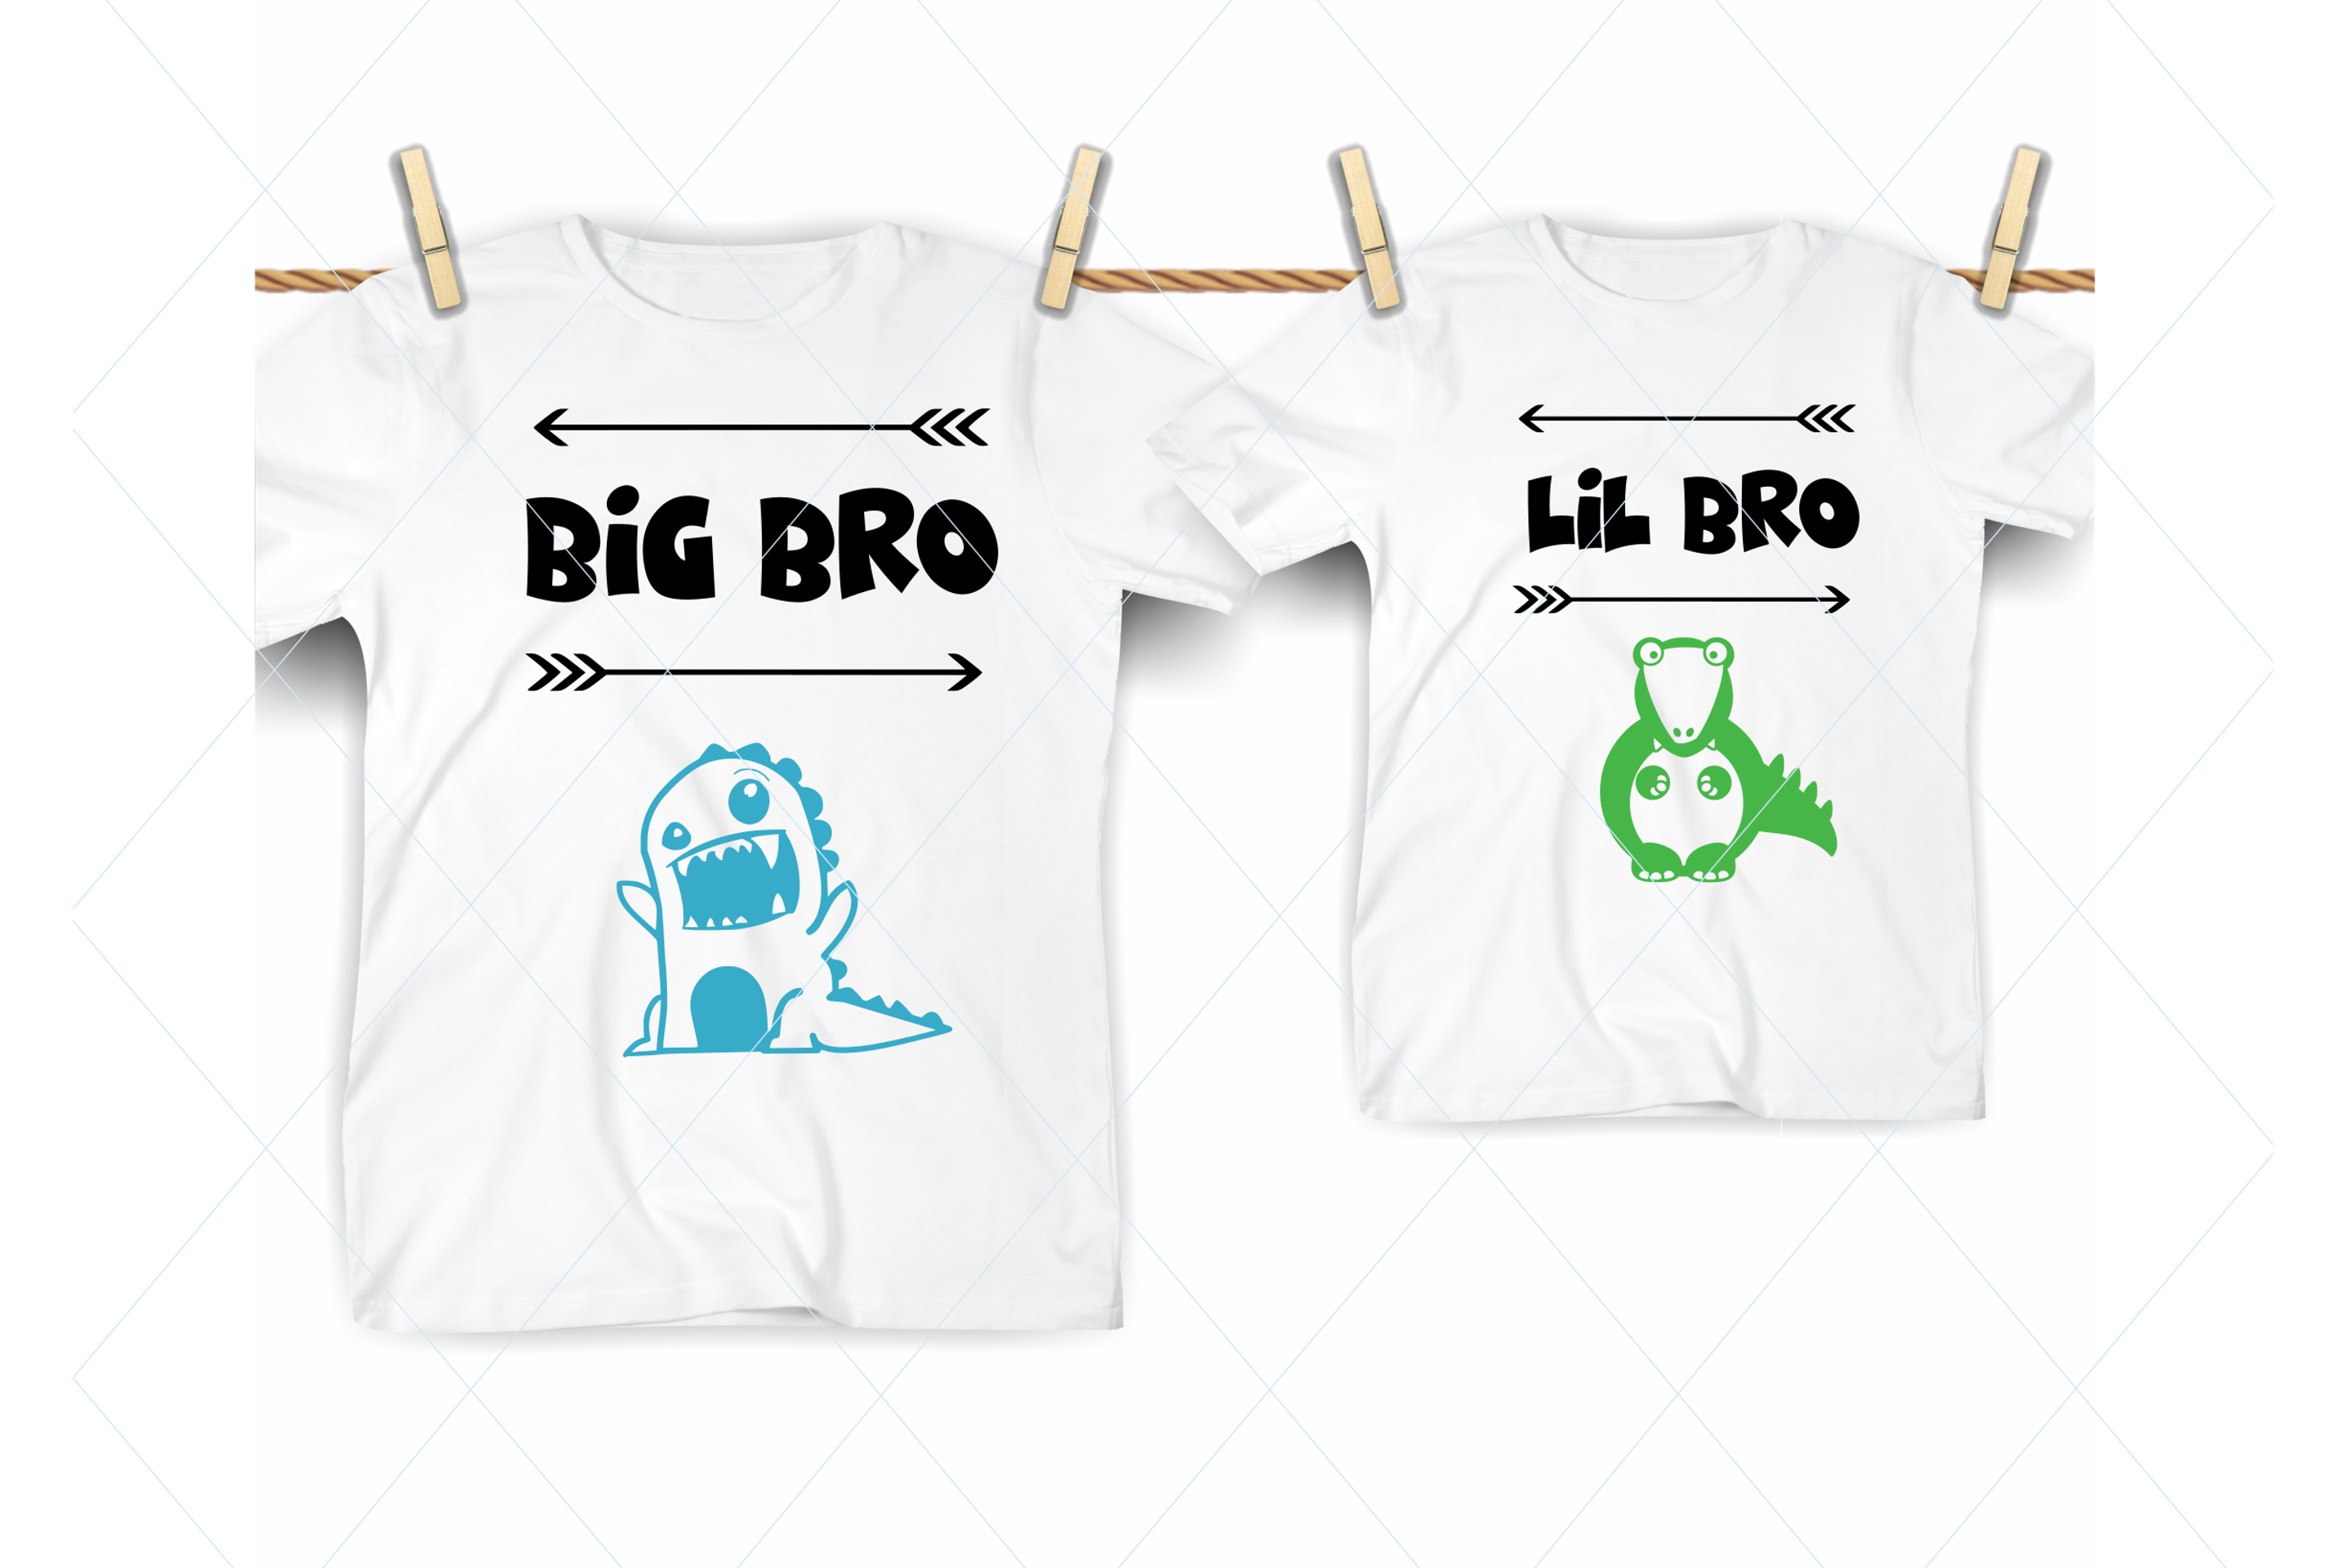 Big bro svg, lil bro svg, brothers cut file, kids shirts svg example image 1